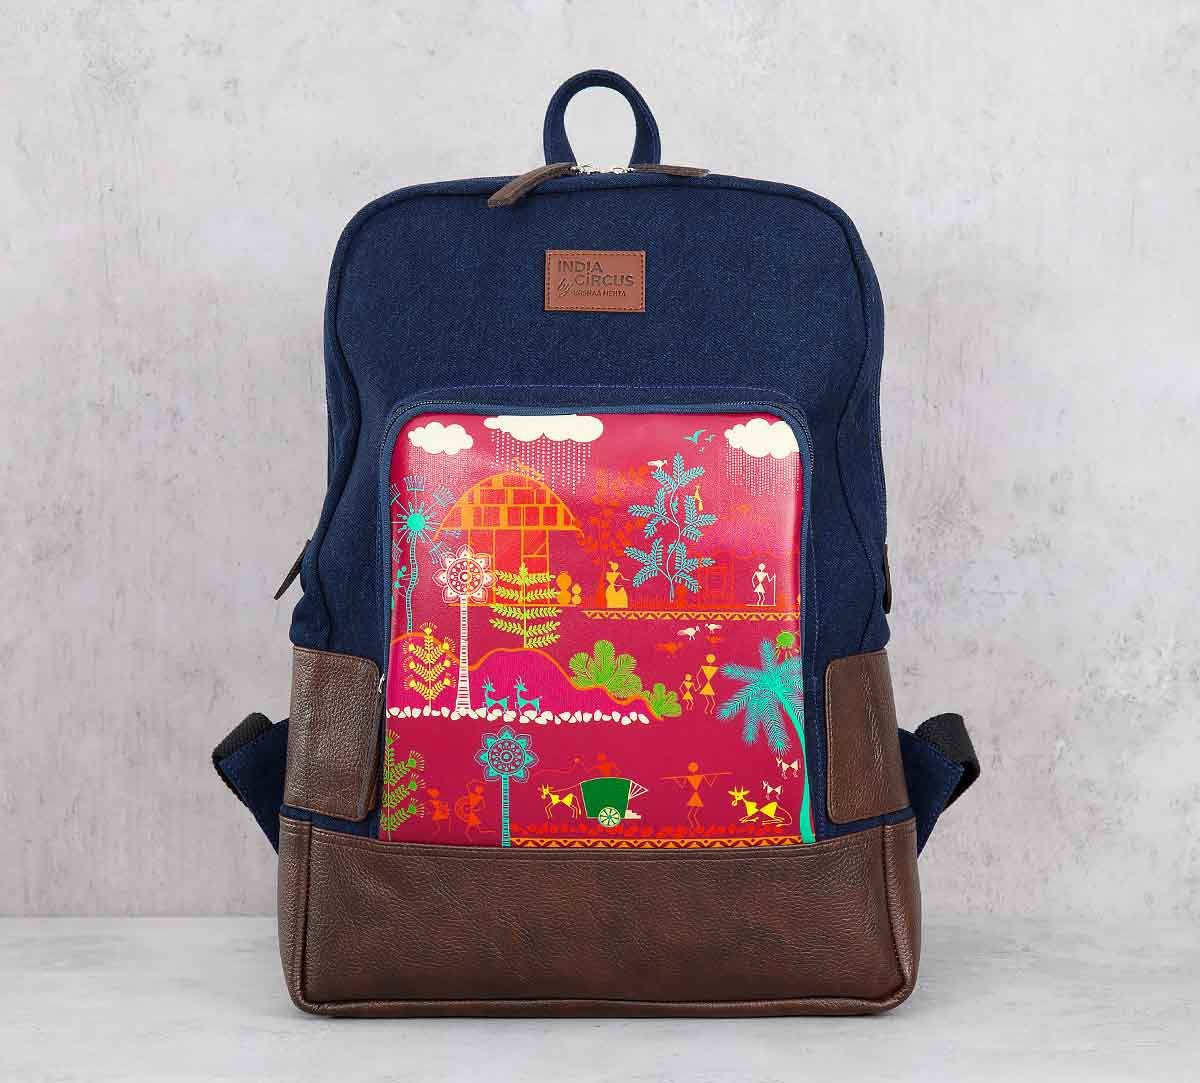 India Circus Village Reverie Denim Backpack